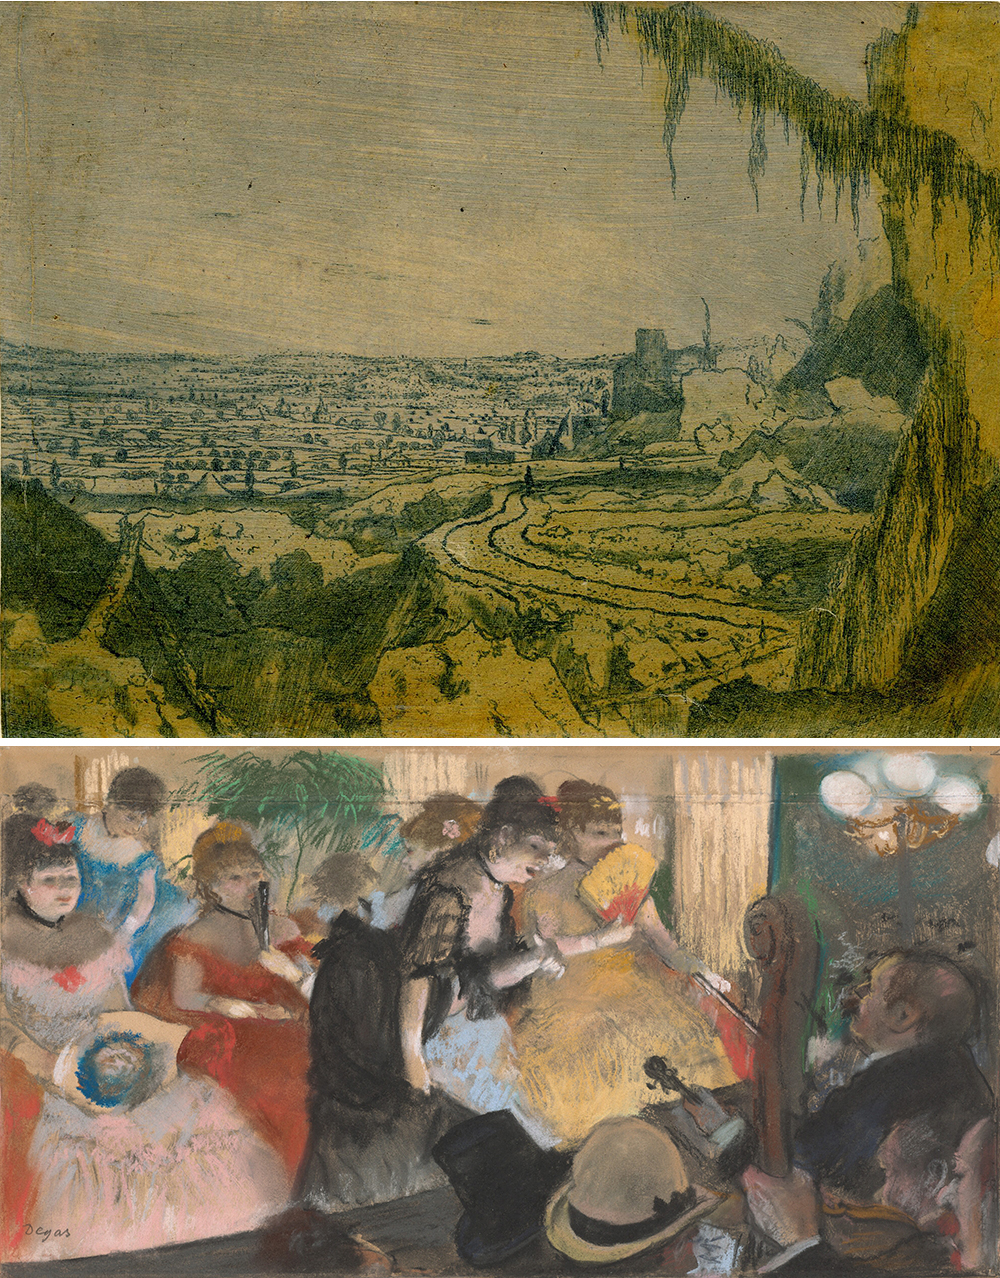 Top: Distant View with a Mossy Branch, by Hercules Segers, c. 1610. Bottom: Café-Concert, by Edgar Degas, c. 1876.